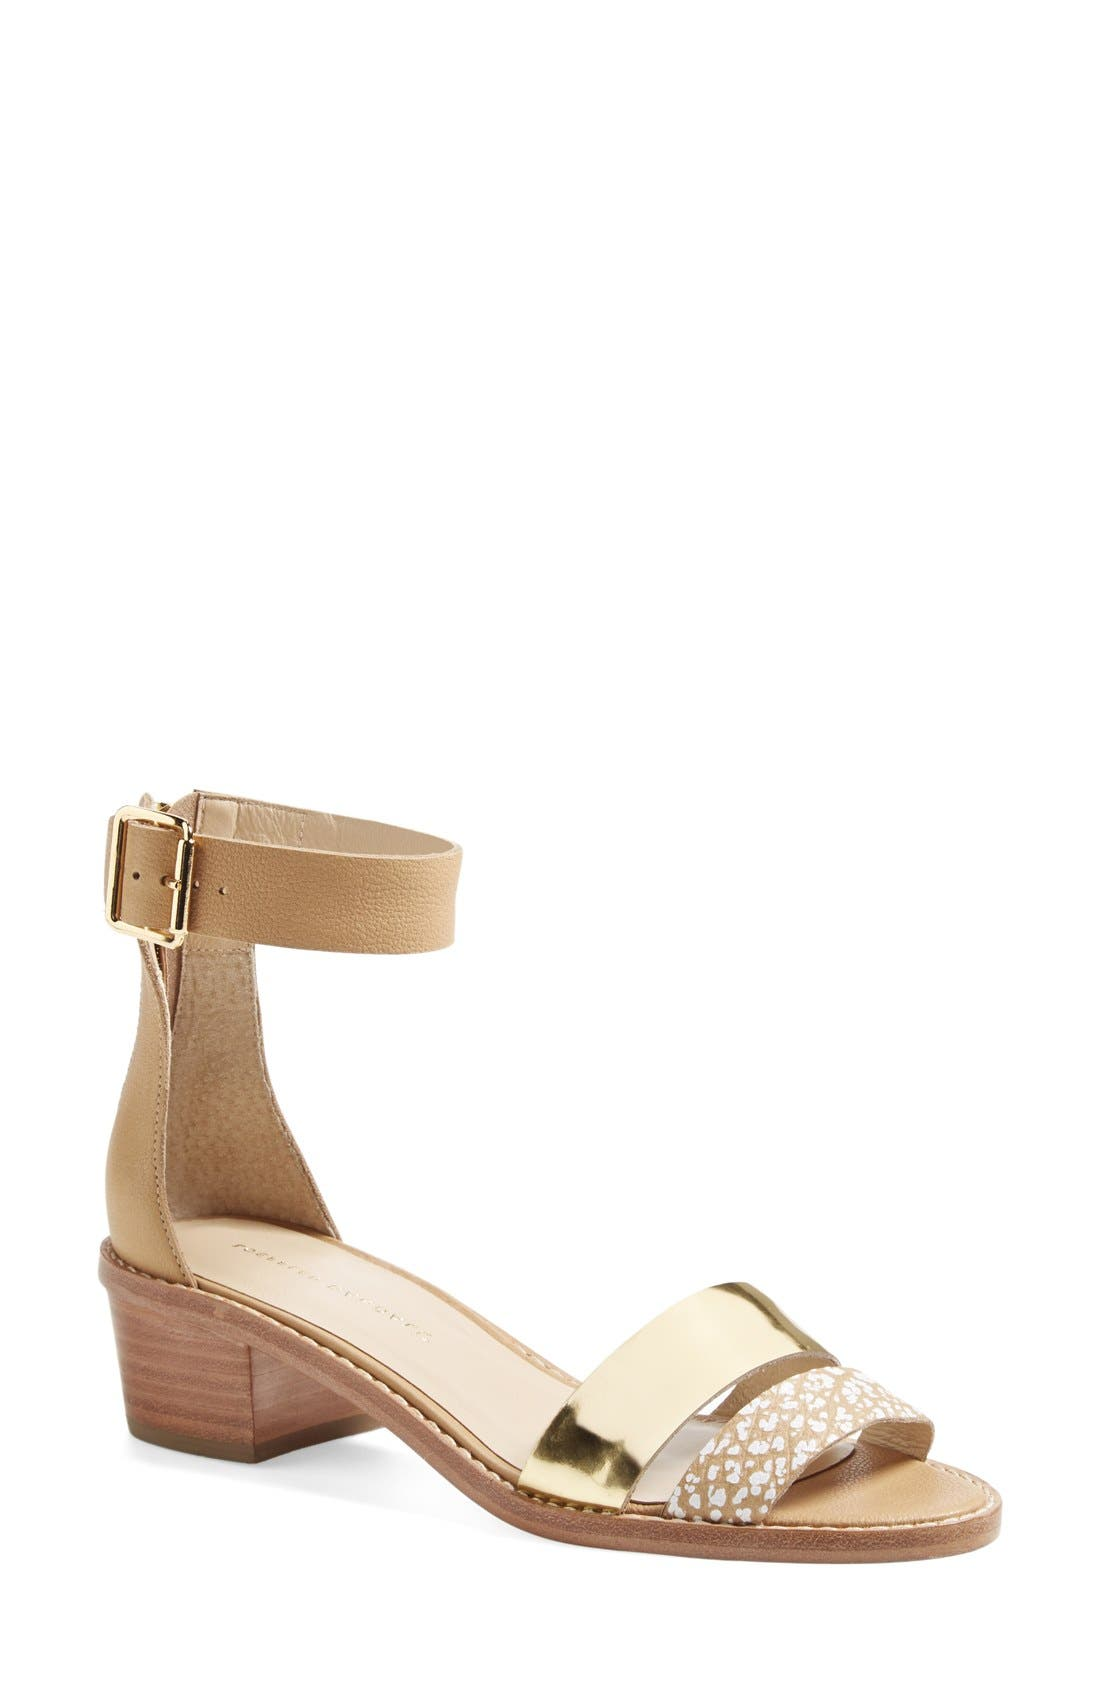 'Henry' Leather Sandal,                             Main thumbnail 1, color,                             Natural/ Gold Mix